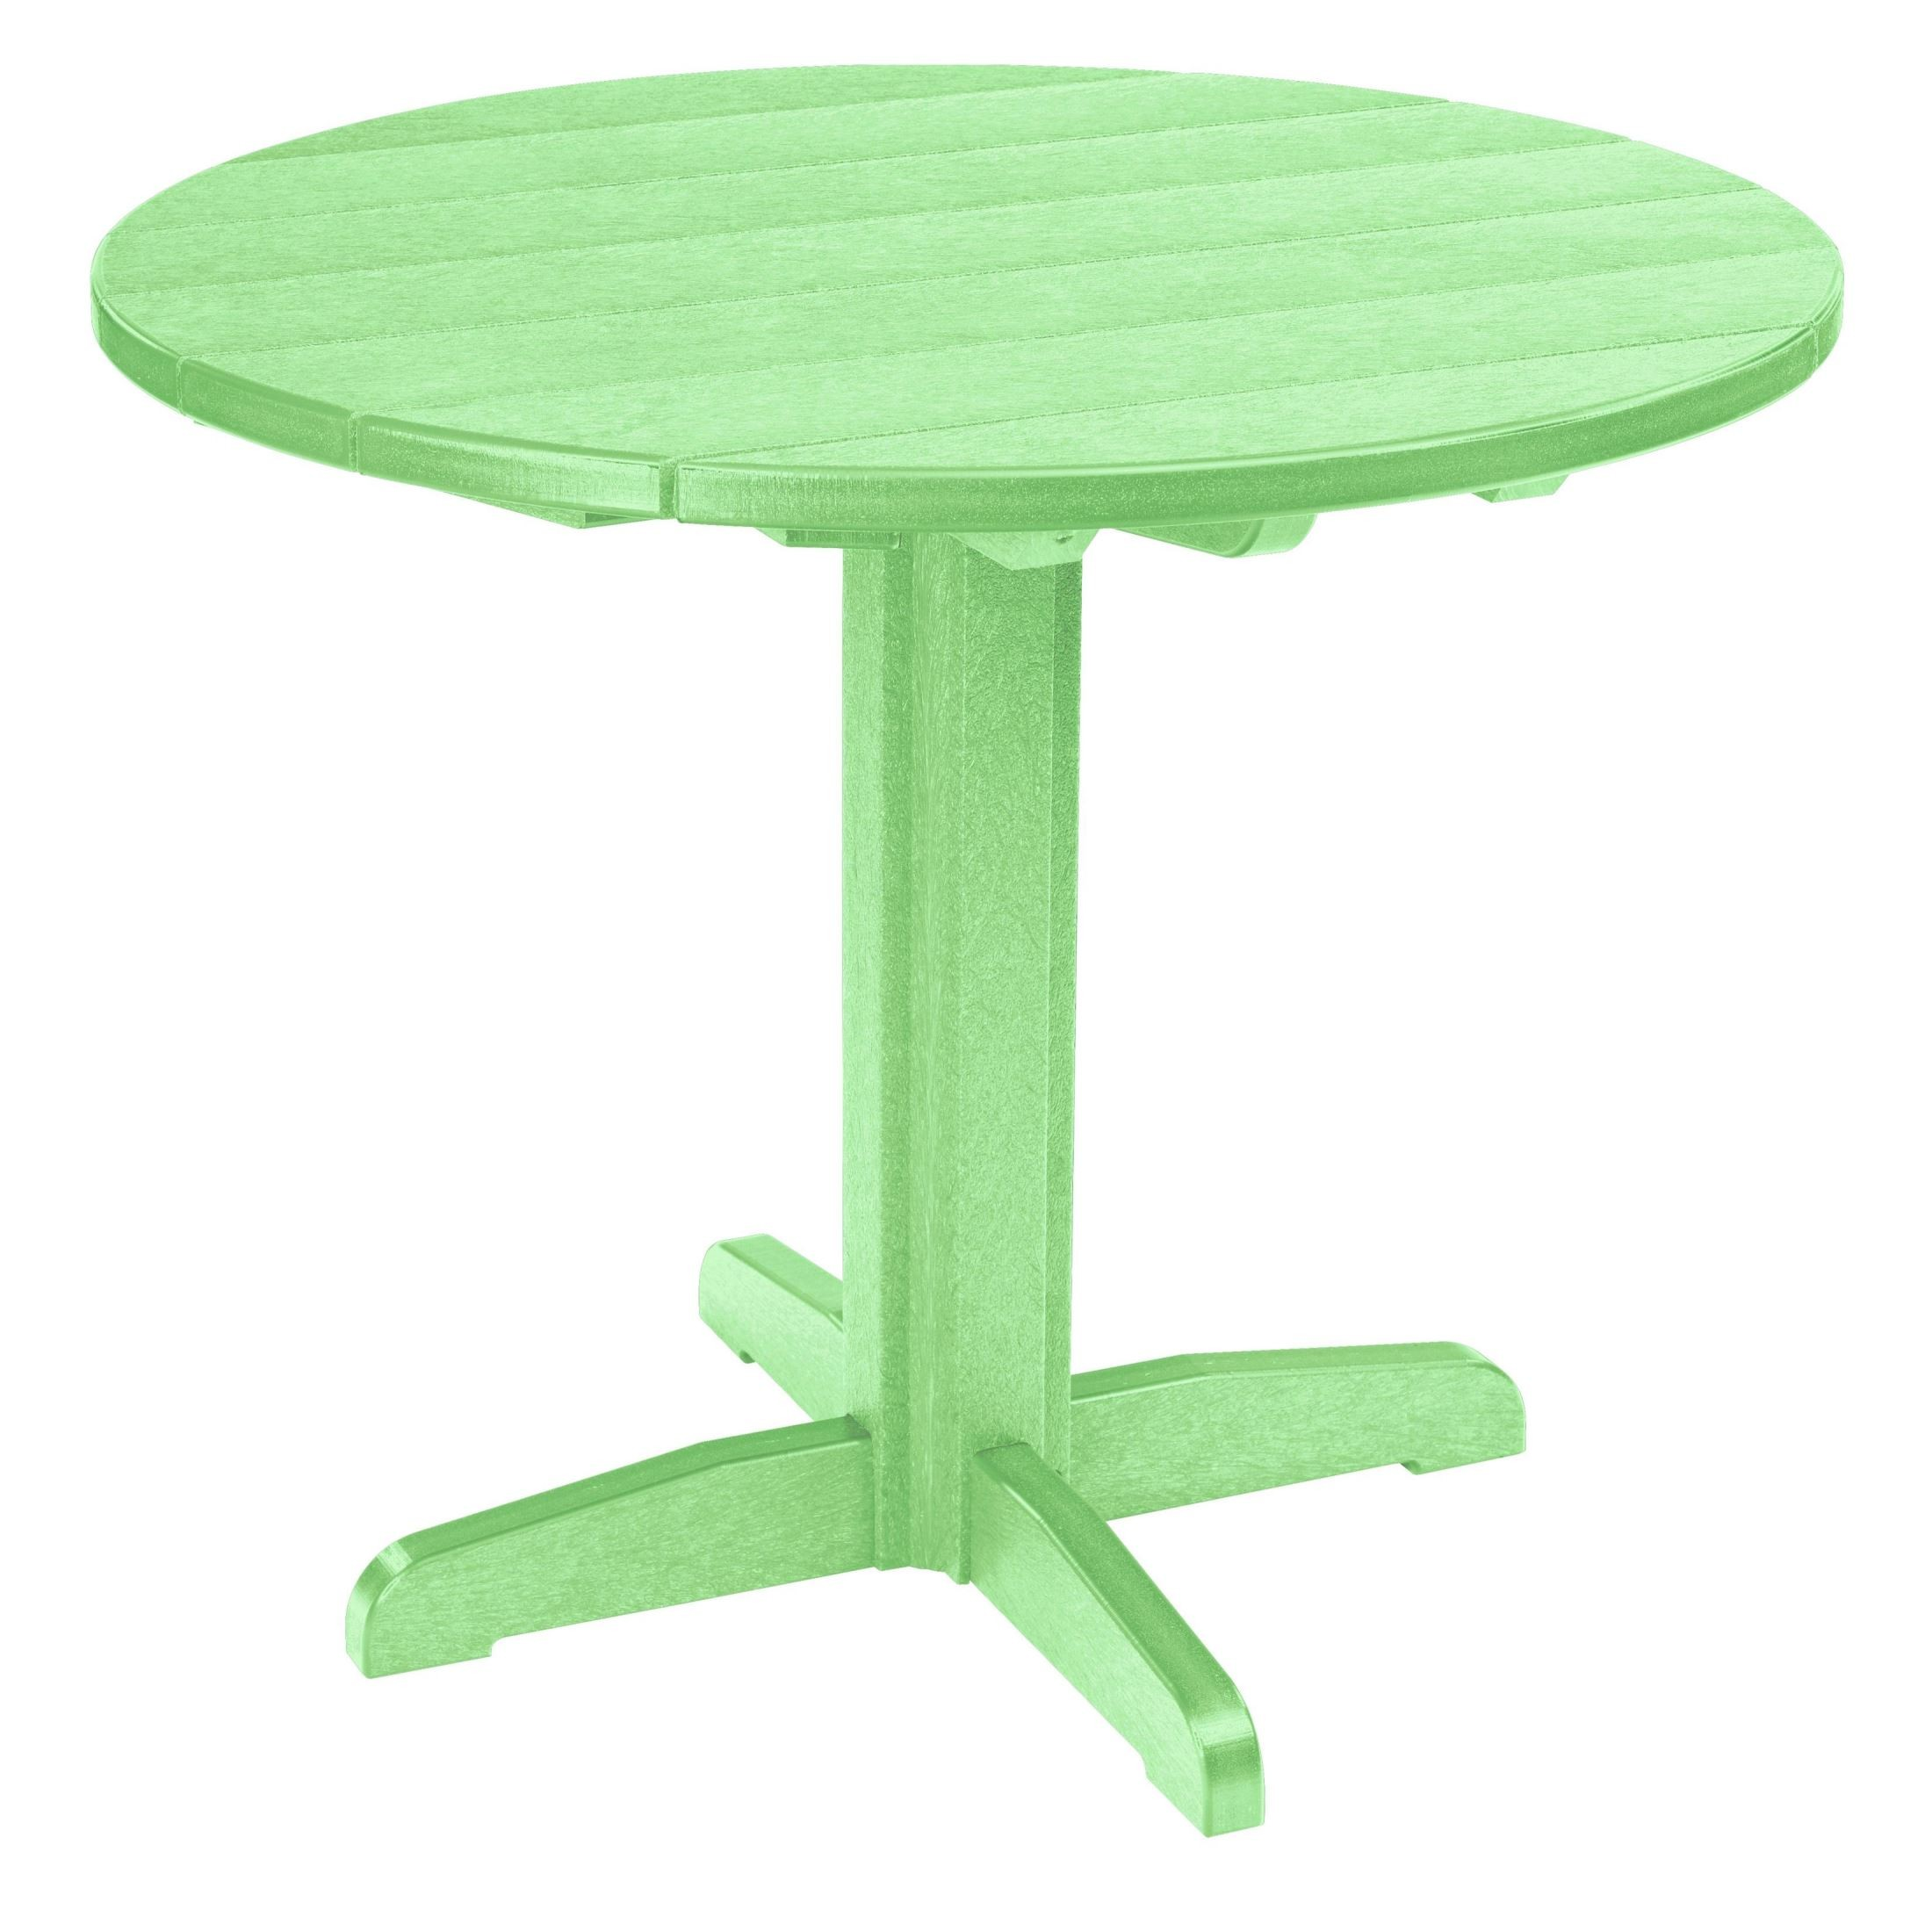 Generations Lime Green 37 Round Pedestal Dining Table